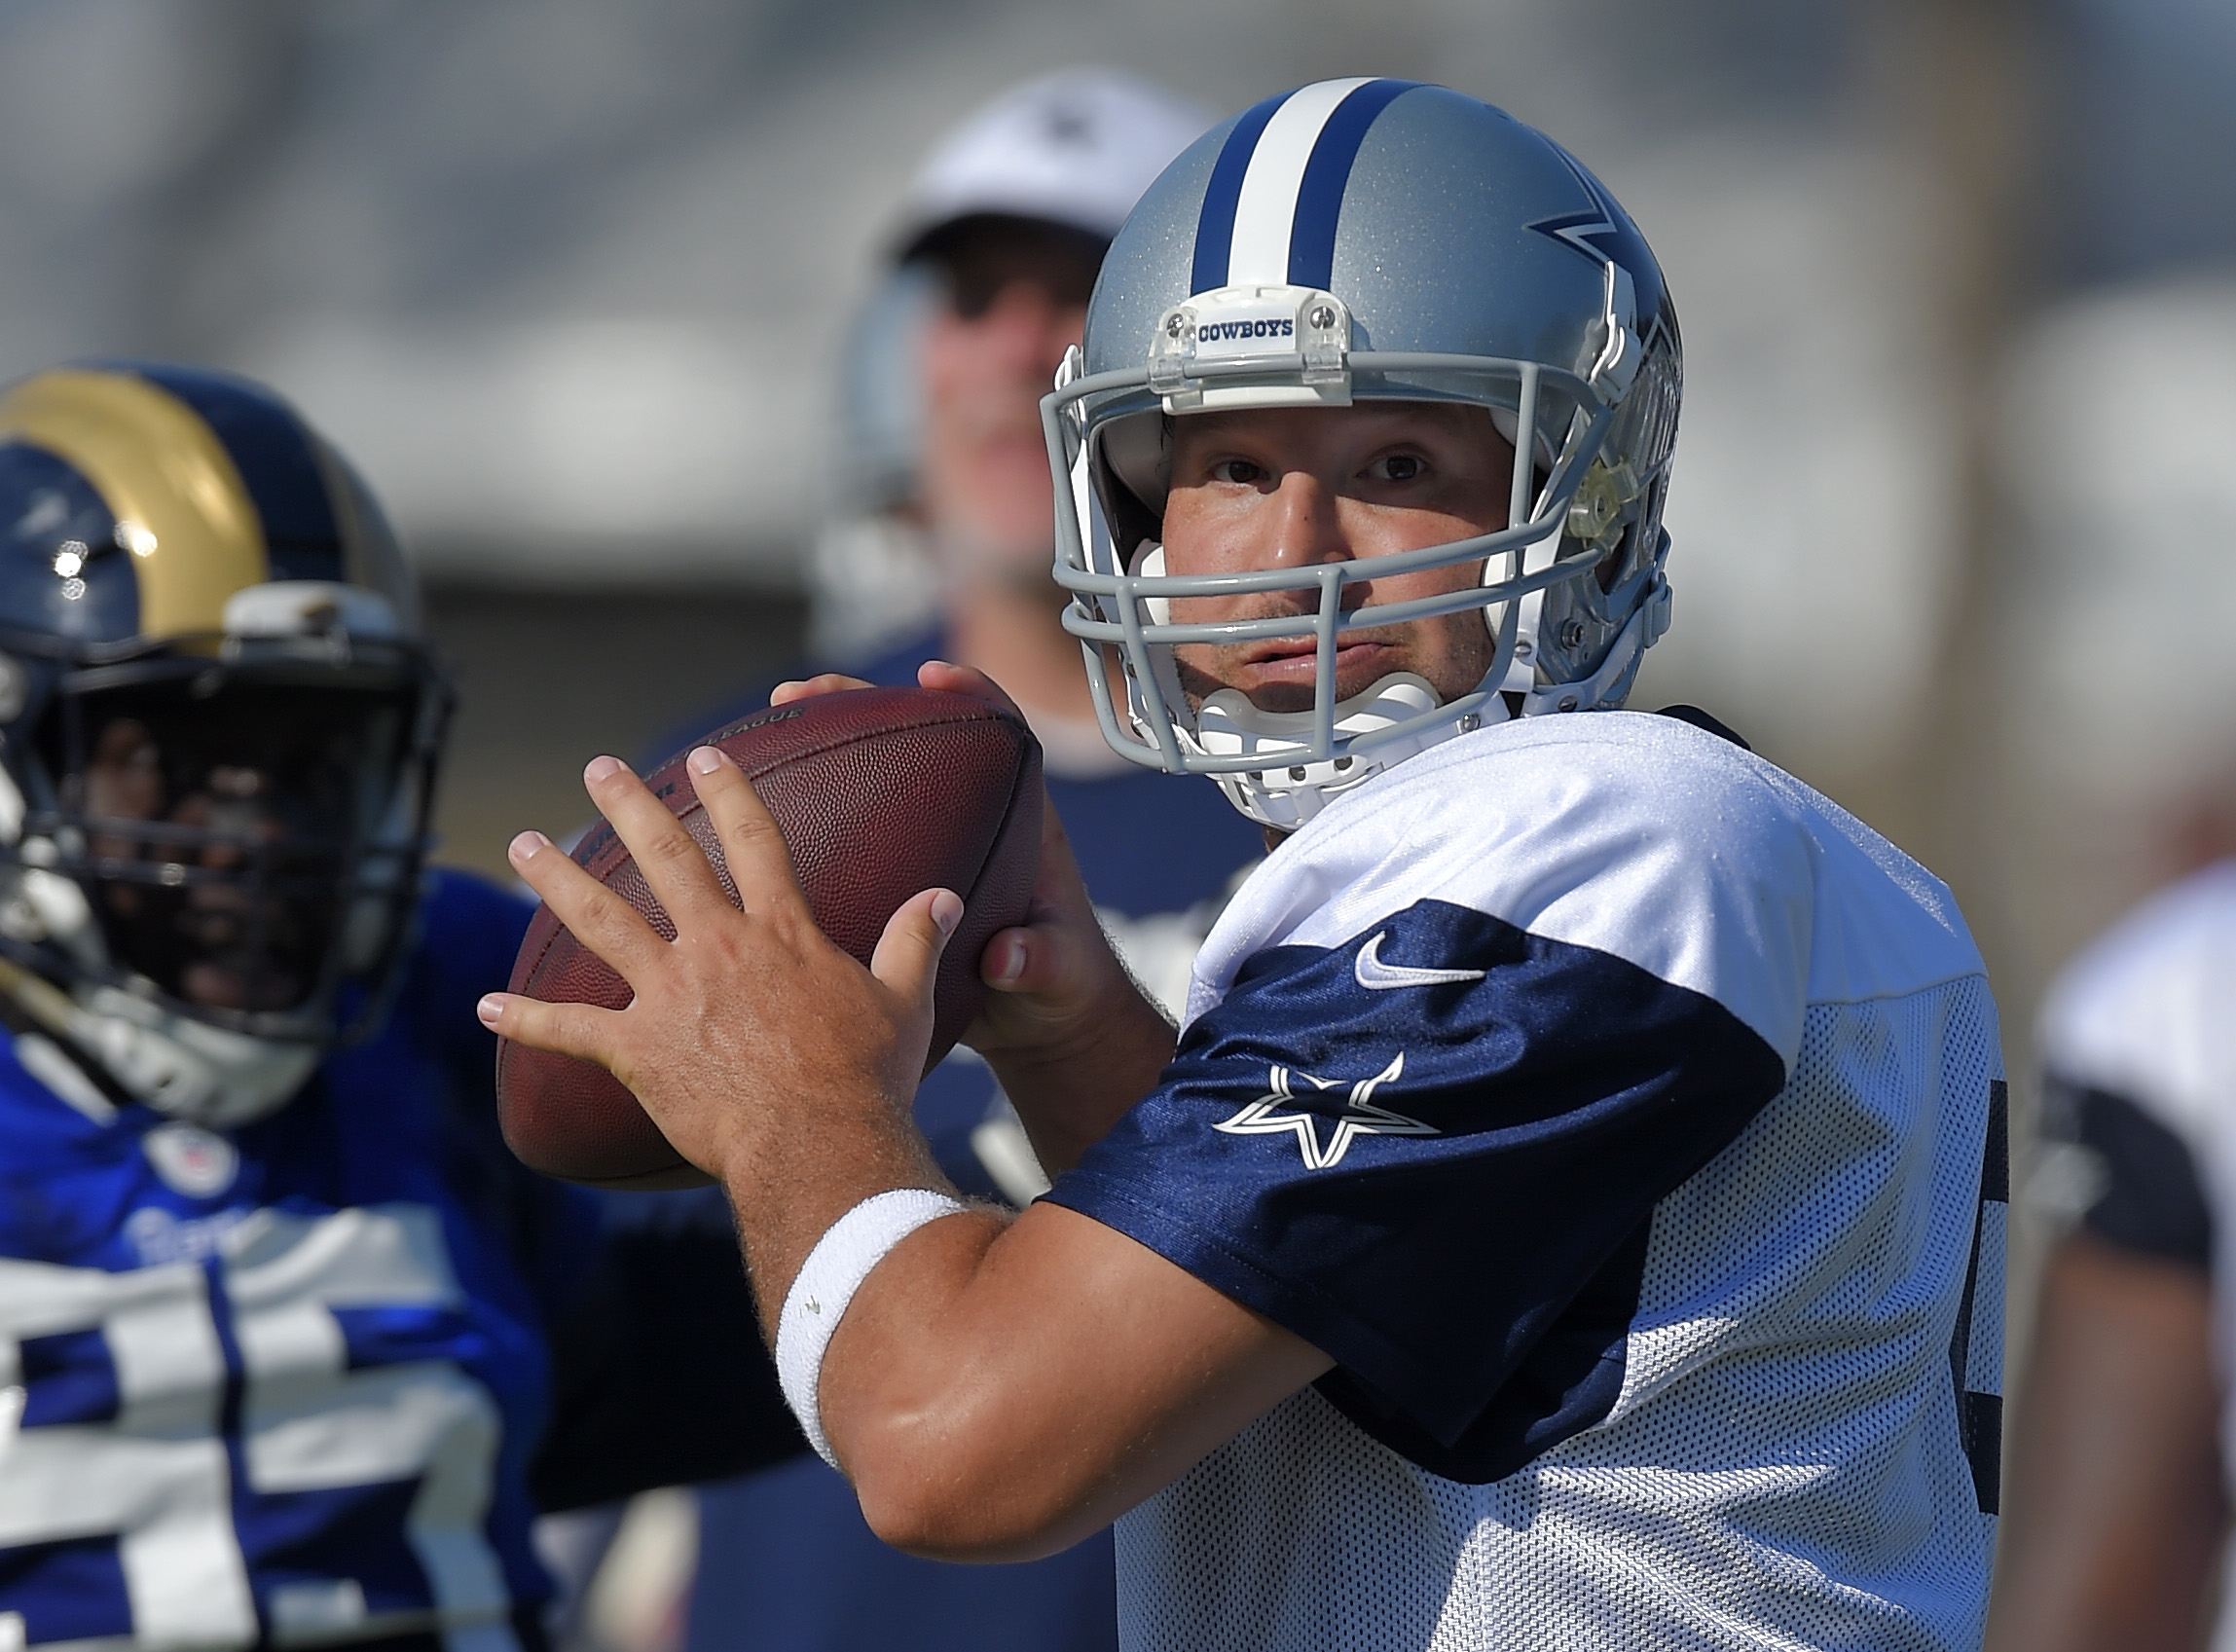 Dallas Cowboys quarterback Tony Romo looks to pass during a joint NFL football training camp with the St. Louis Rams, Tuesday, Aug. 18, 2015, in Oxnard, Calif. (AP Photo/Mark J. Terrill)